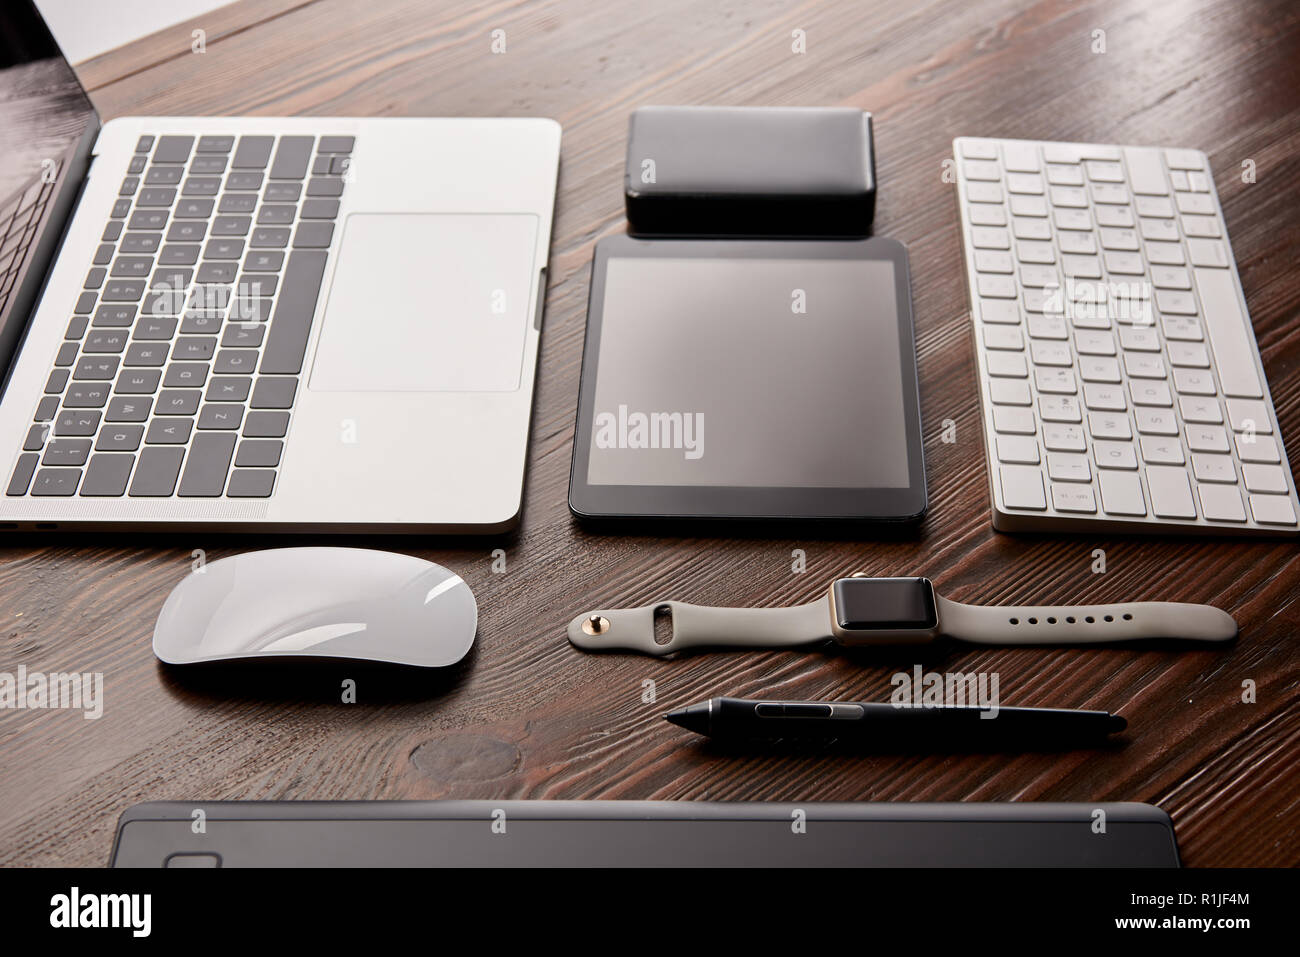 assembled various modern gadgets on wooden table - Stock Image